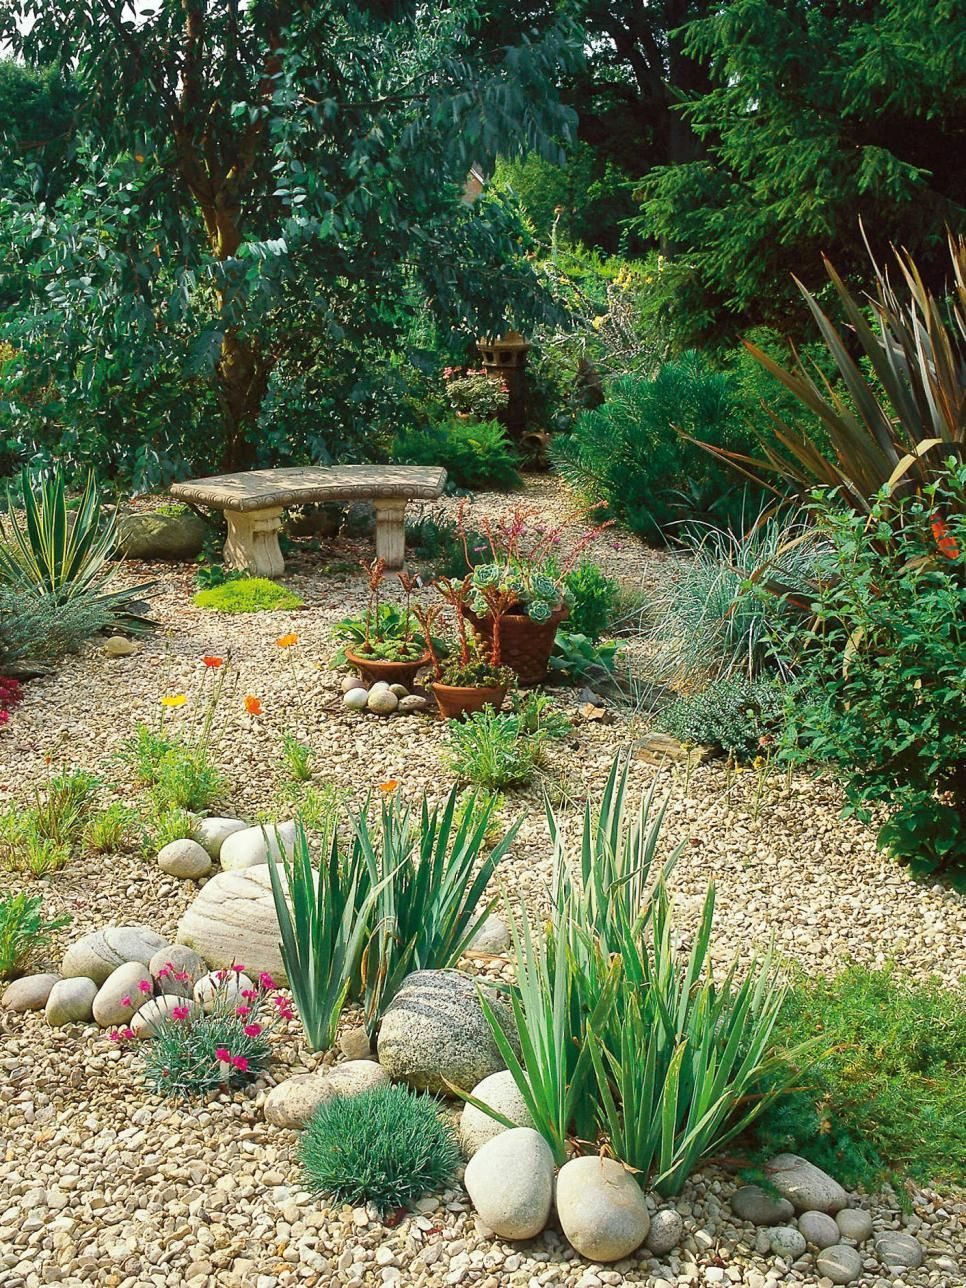 Stunning Landscape Design Ideas HGTV Gardens shows off the many ways gravel, pebbles, bark chips and other soft surfacing materials can look amazing in a garden design.HGTV Gardens shows off the many ways gravel, pebbles, bark chips and other soft surfacing materials can look amazing in a garden design.